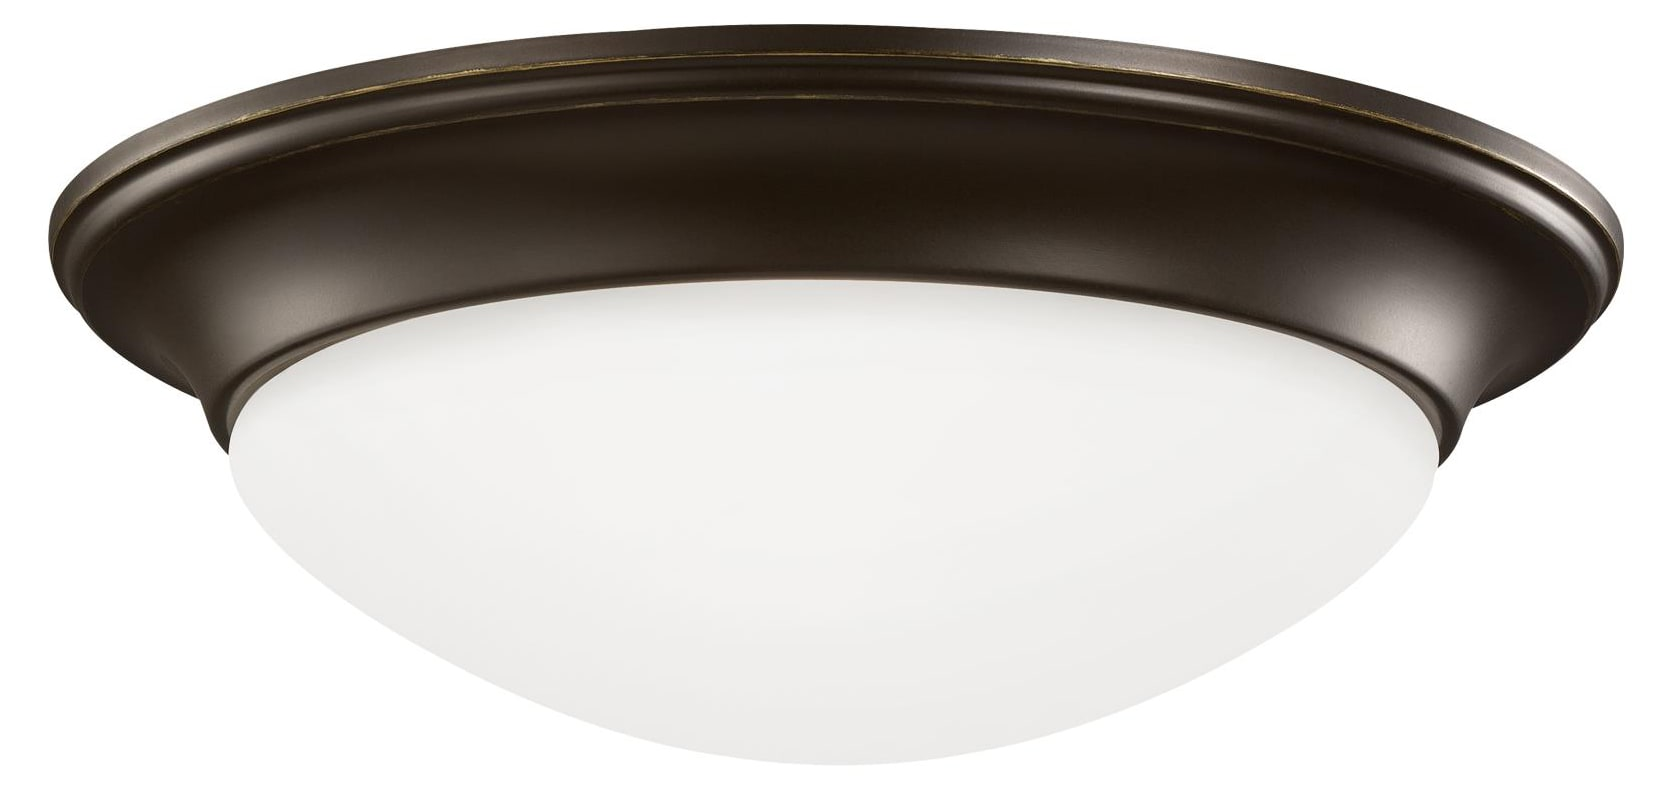 Sea Gull Lighting 75435 Nash 2 Light Flush Mount Ceiling Fixture